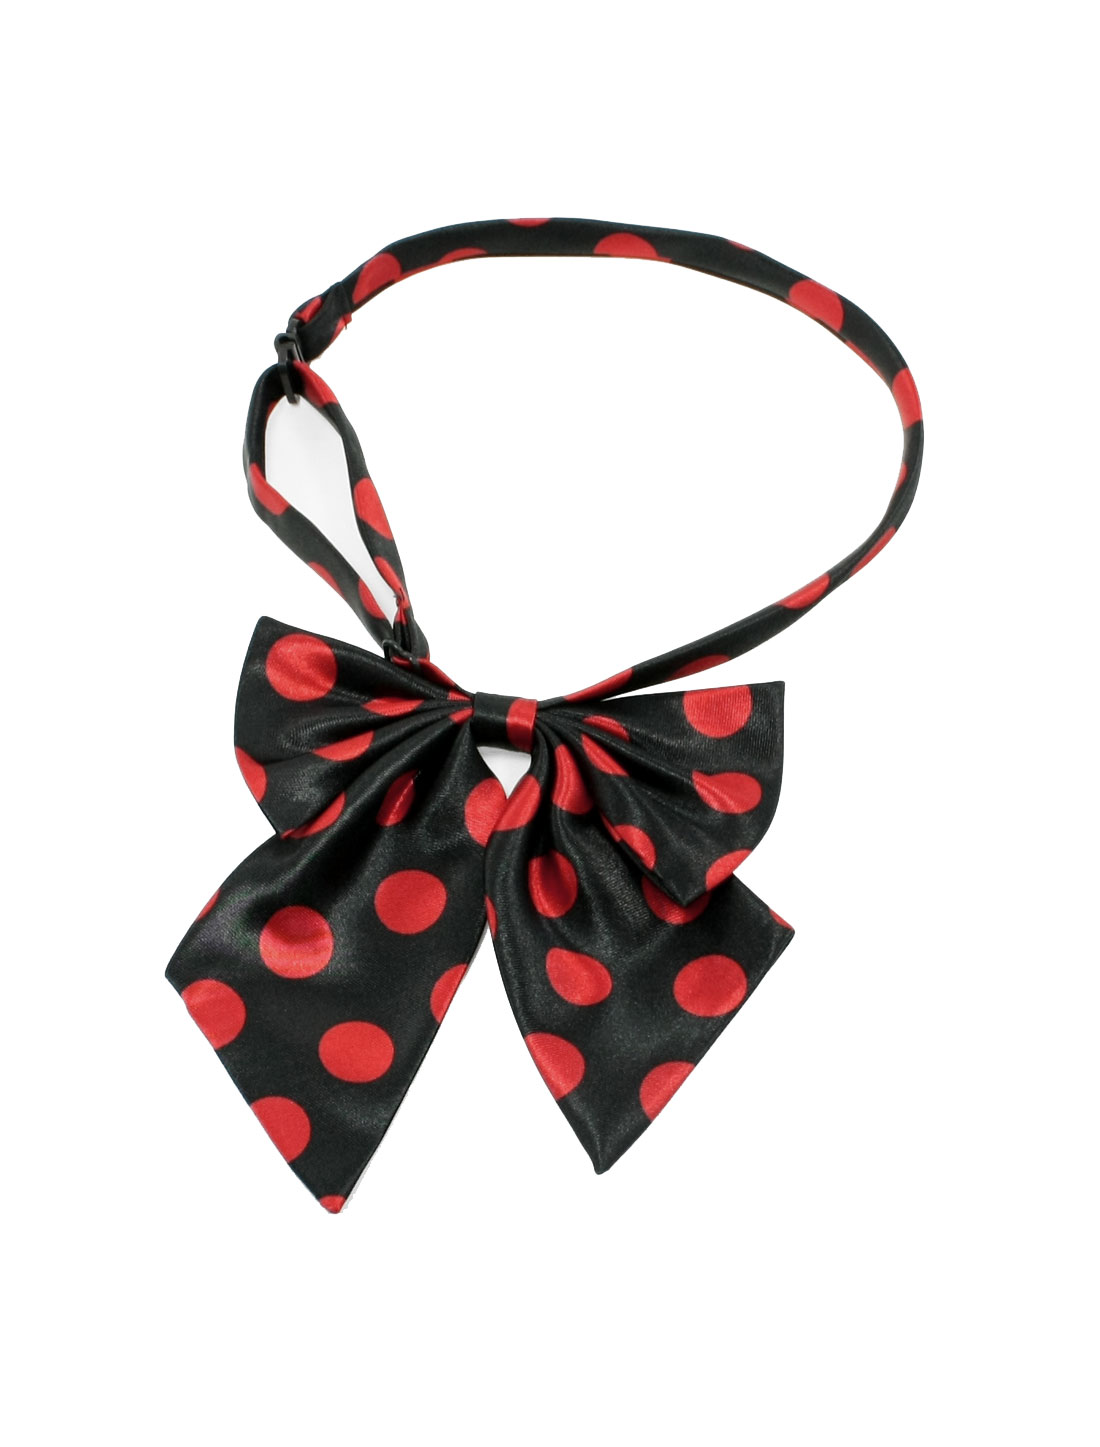 Red Black Polka Dots Pattern Bowknot Halter Neck Bow Tie for Lady